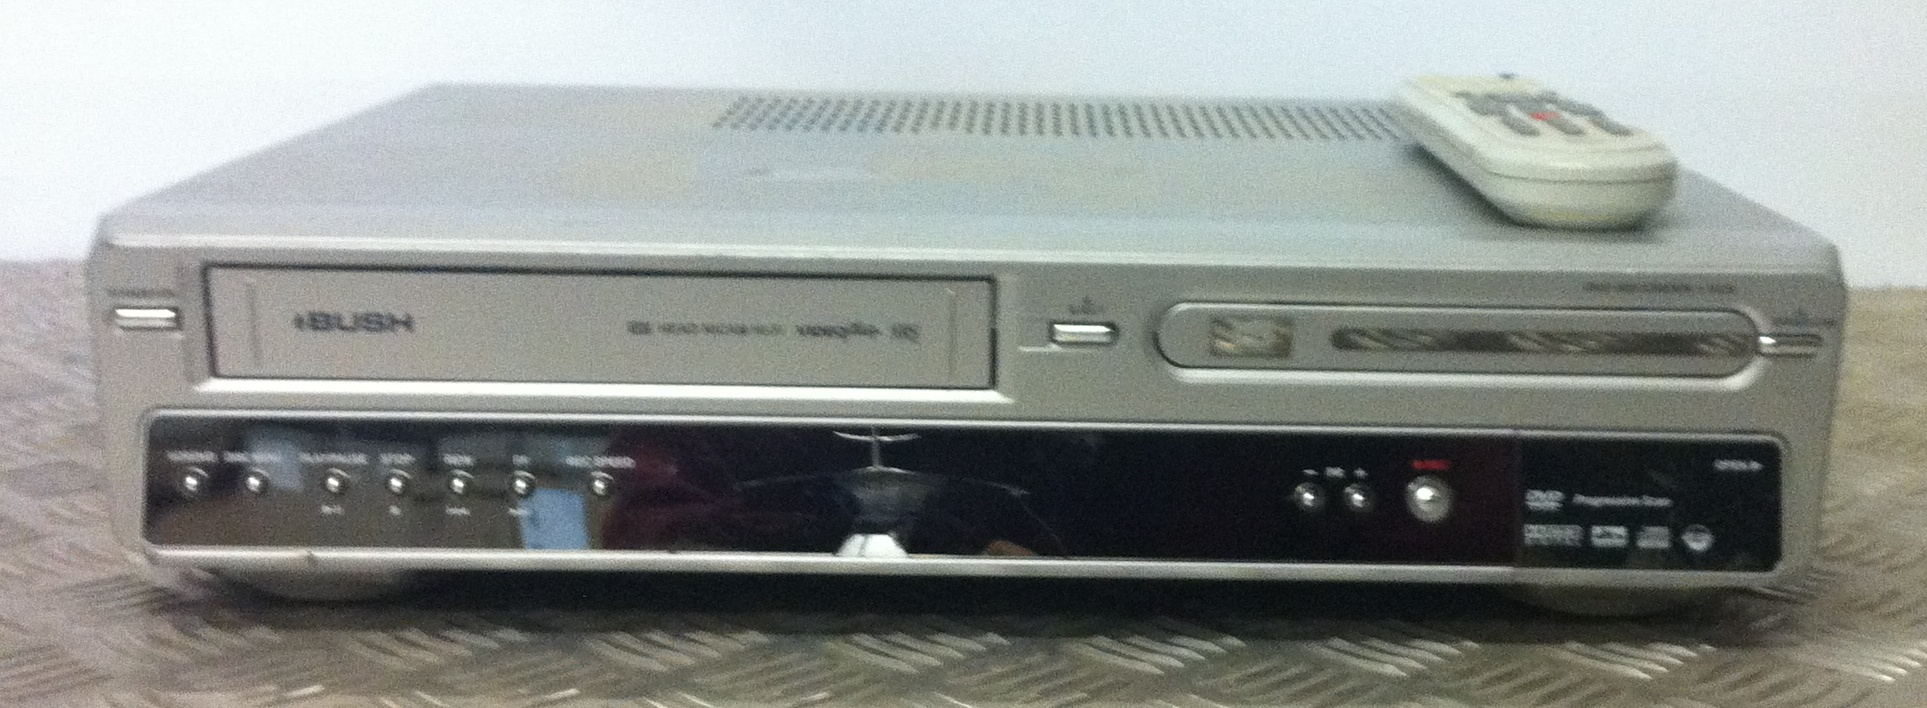 Lot 30 - Bush Video/DVD Recorder